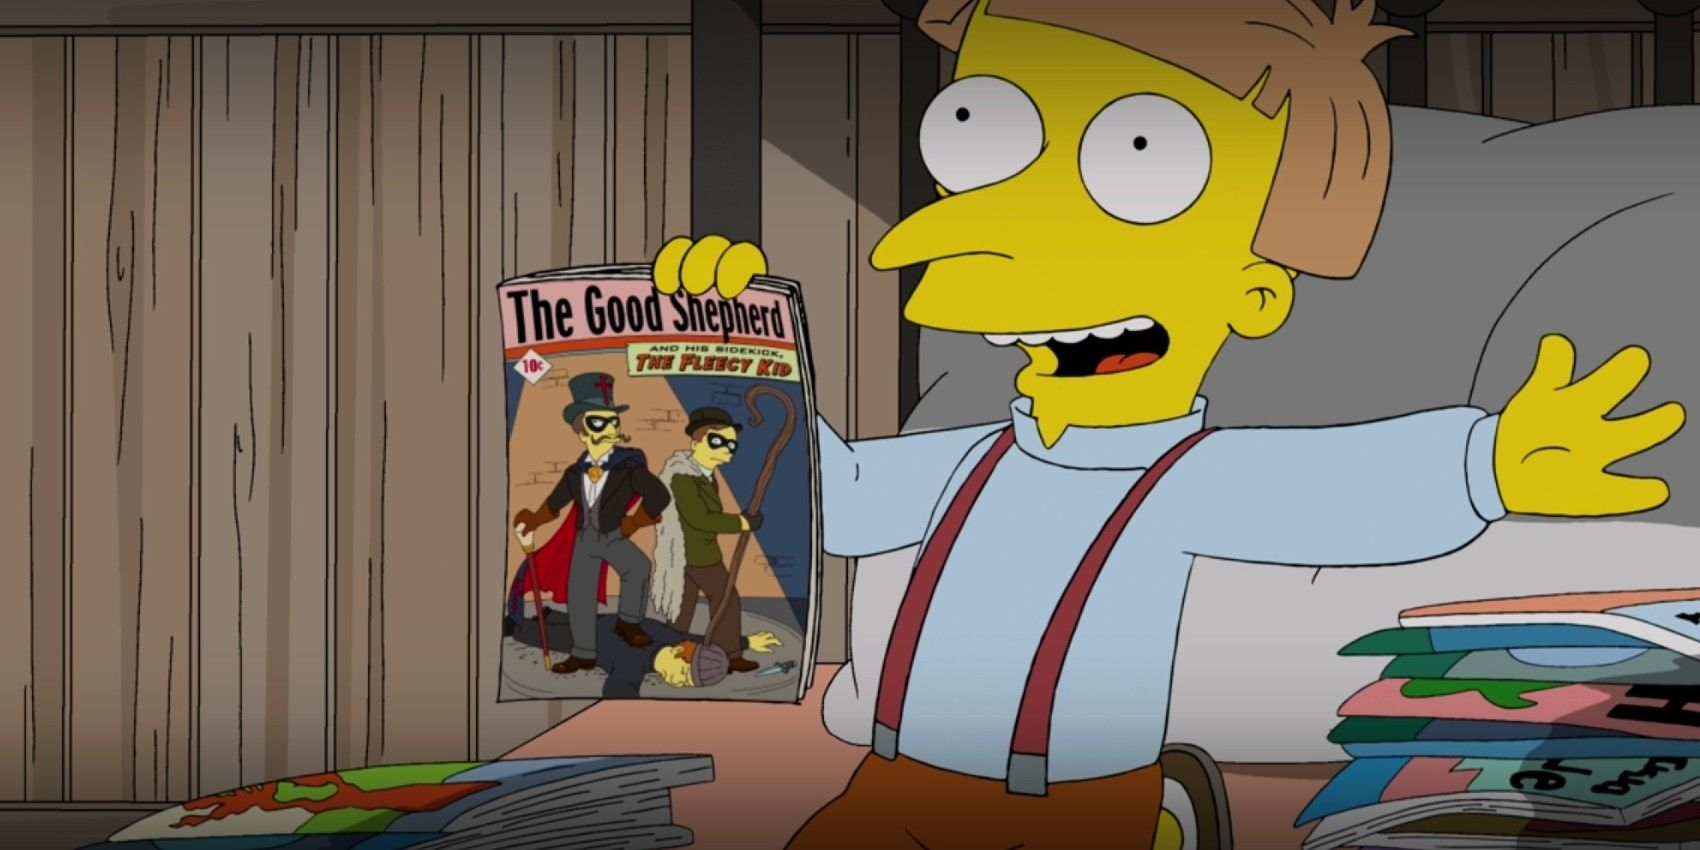 The Simpsons: Before Radioactive Man, There Was... The Good Shepherd